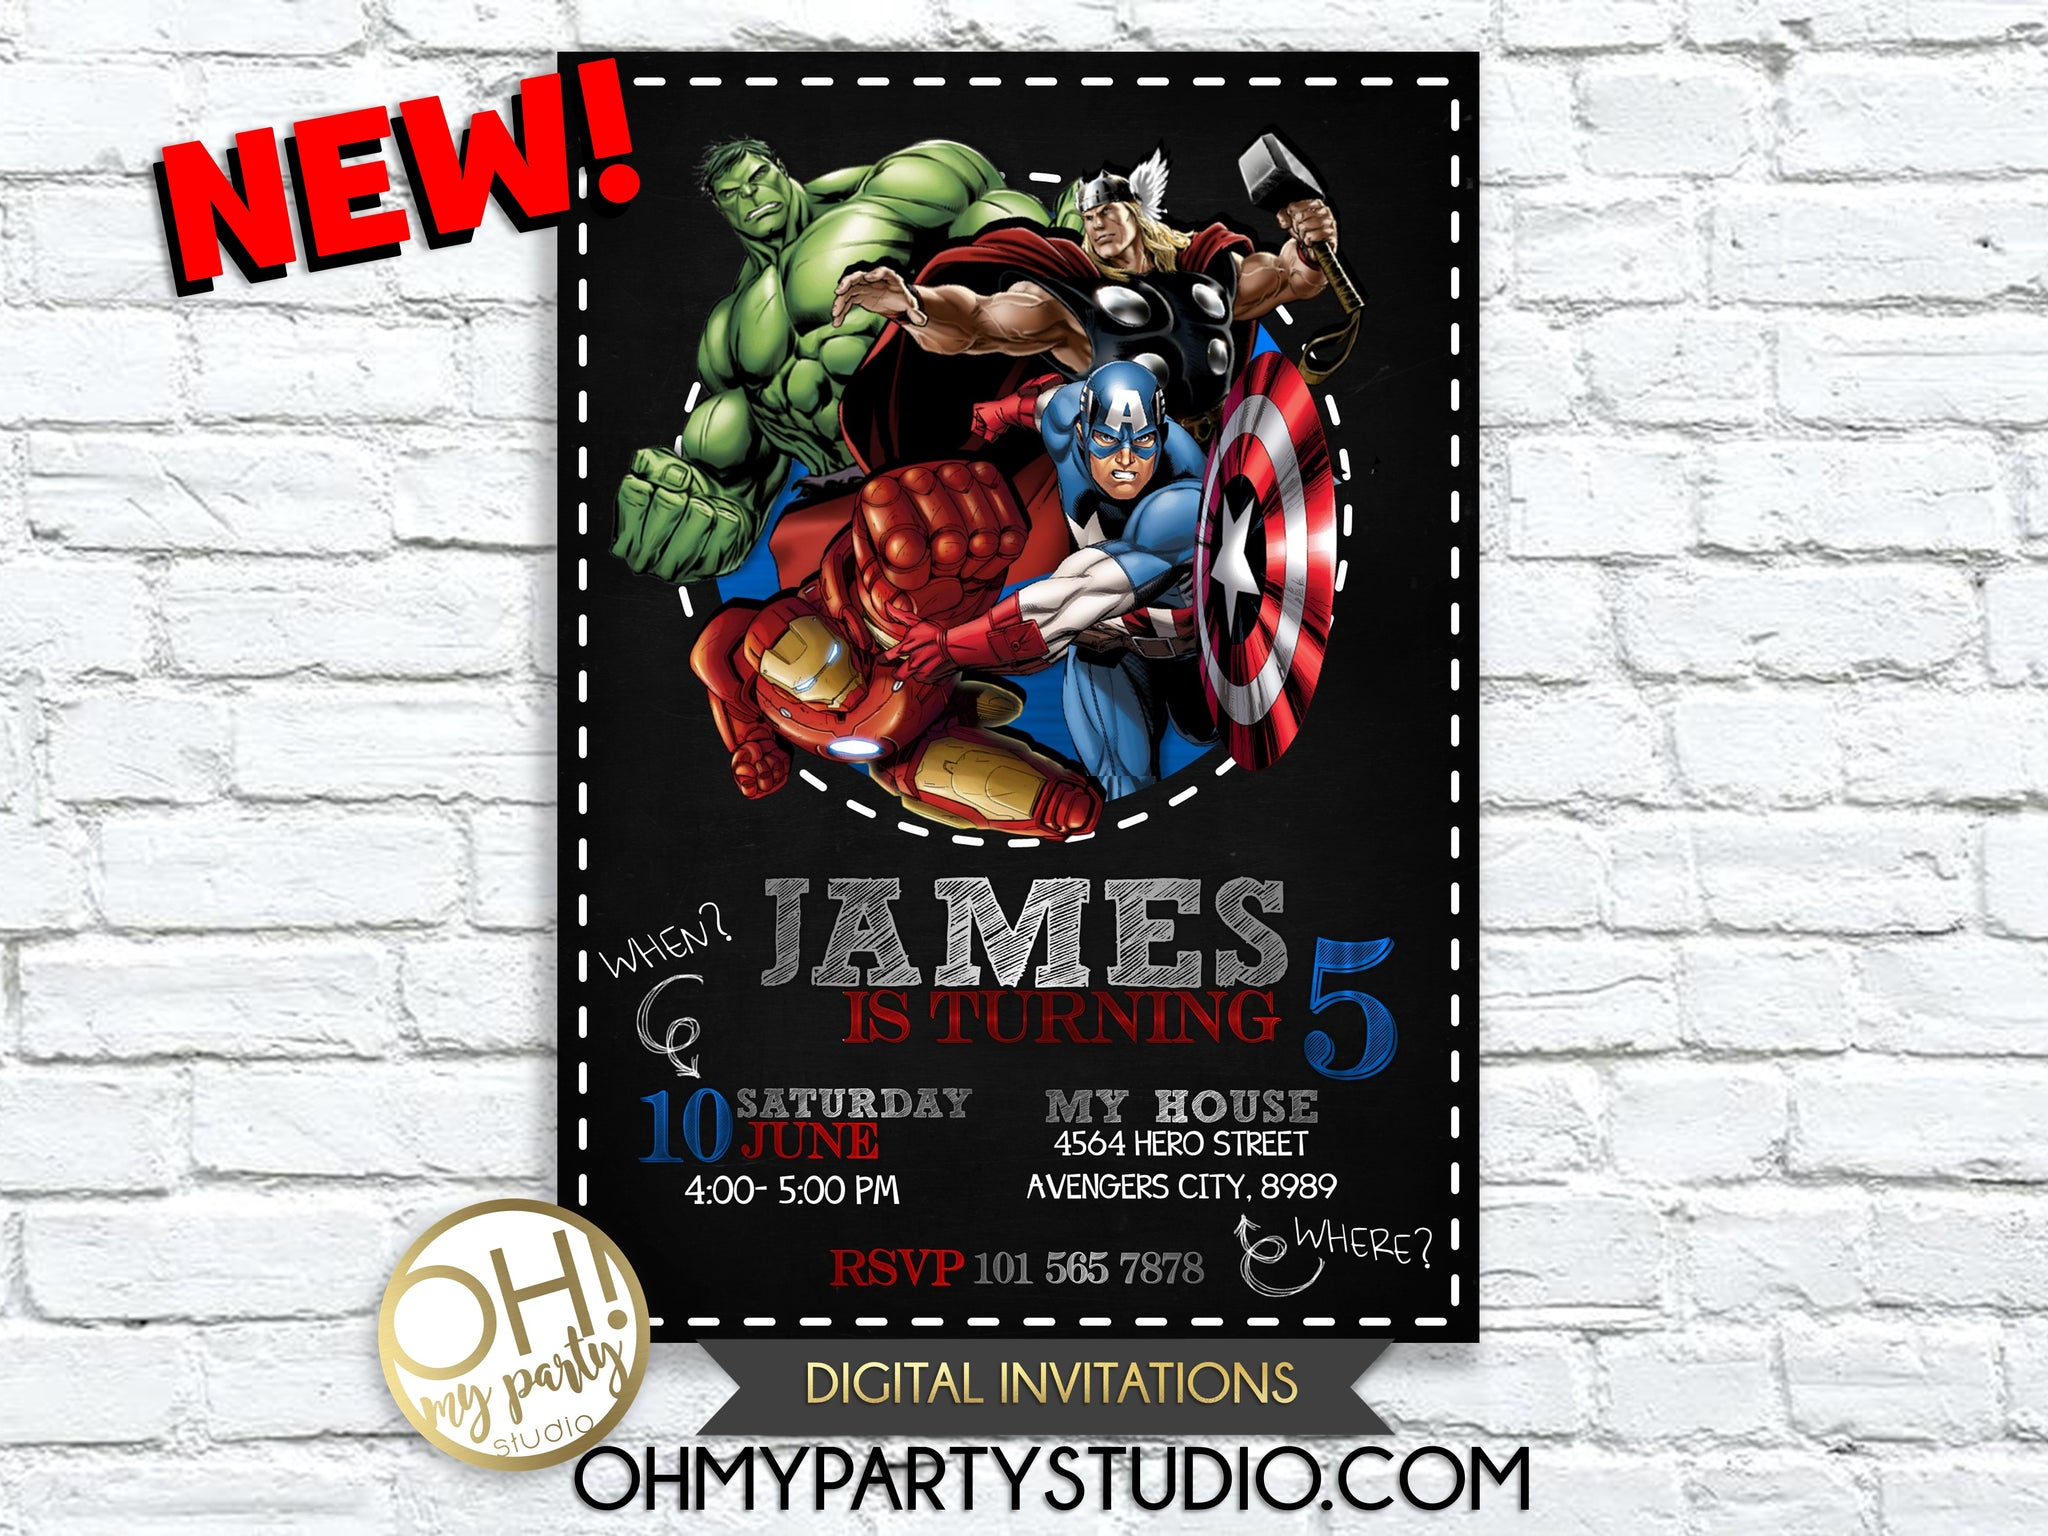 AVENGERS INVITATION, AVENGERS BIRTHDAY INVITATION, SUPERHEROES BIRTHDAY, SUPERHEROES INVITATION, SUPERHEROES PARTY, AVENGERS INVITATIONS,AVENGERS PARTY IDEAS, avengers endgame birthday, avengers endgame party, avengers endgame invitation, avengers endgame party ideas